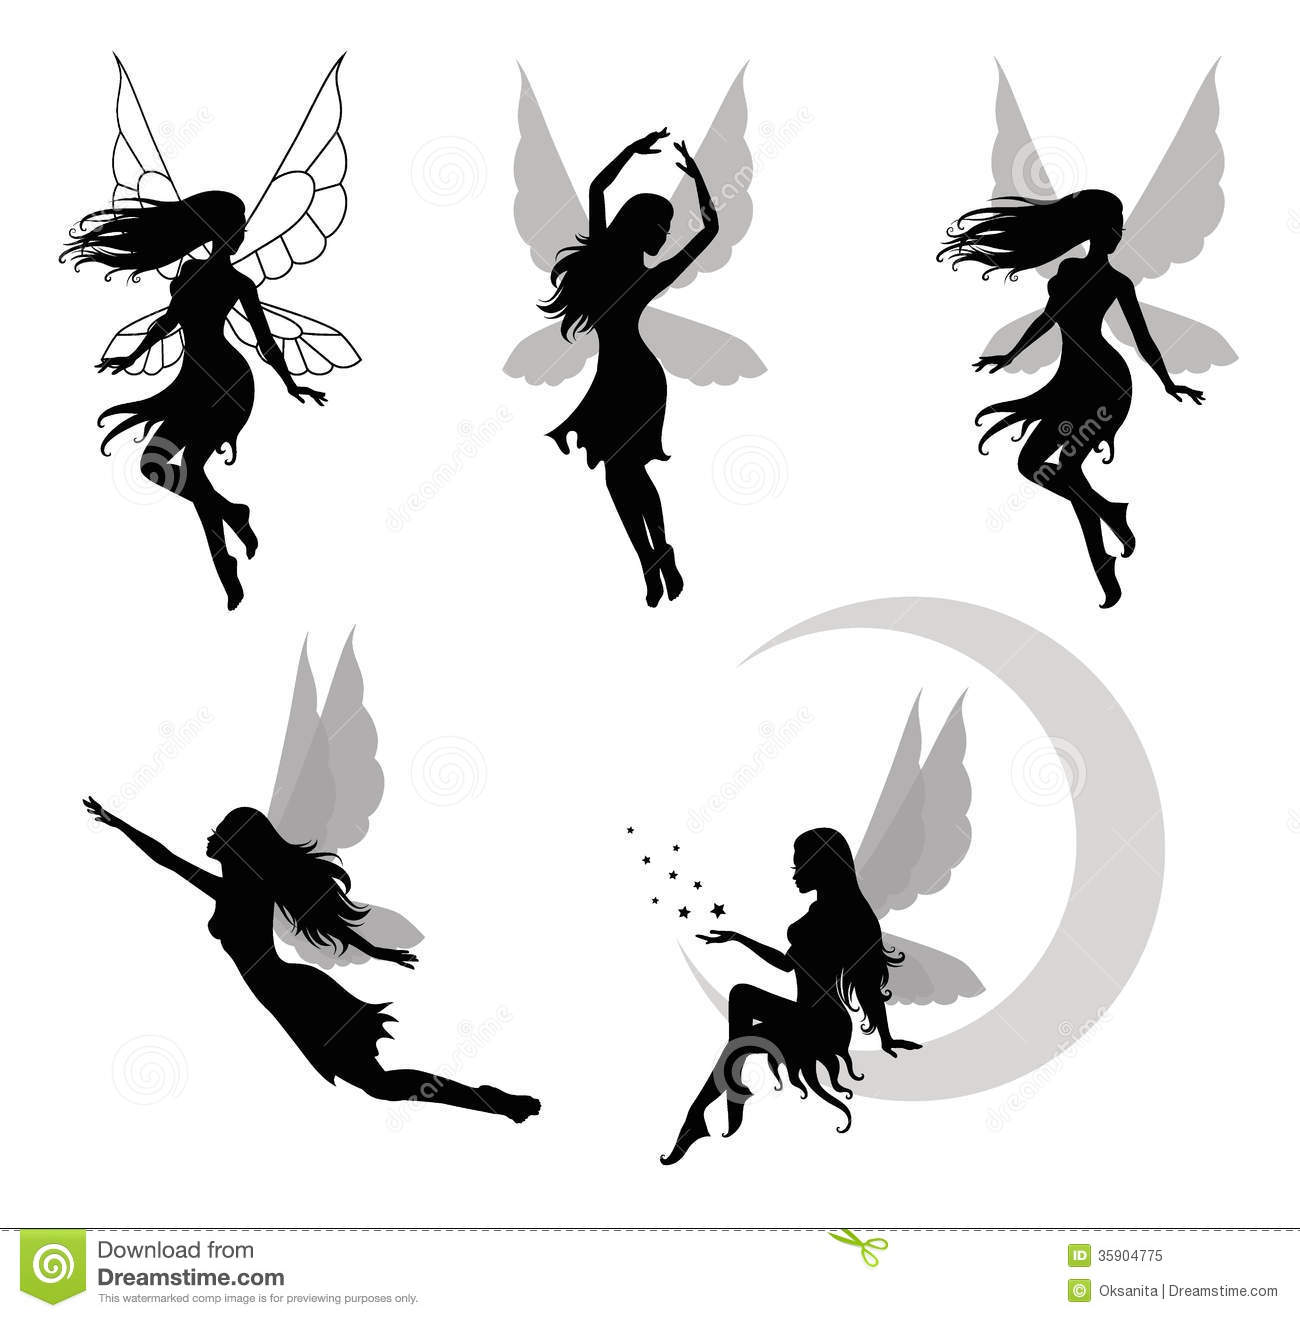 Fairy Royalty Free Stock Photo - Image: 35904775